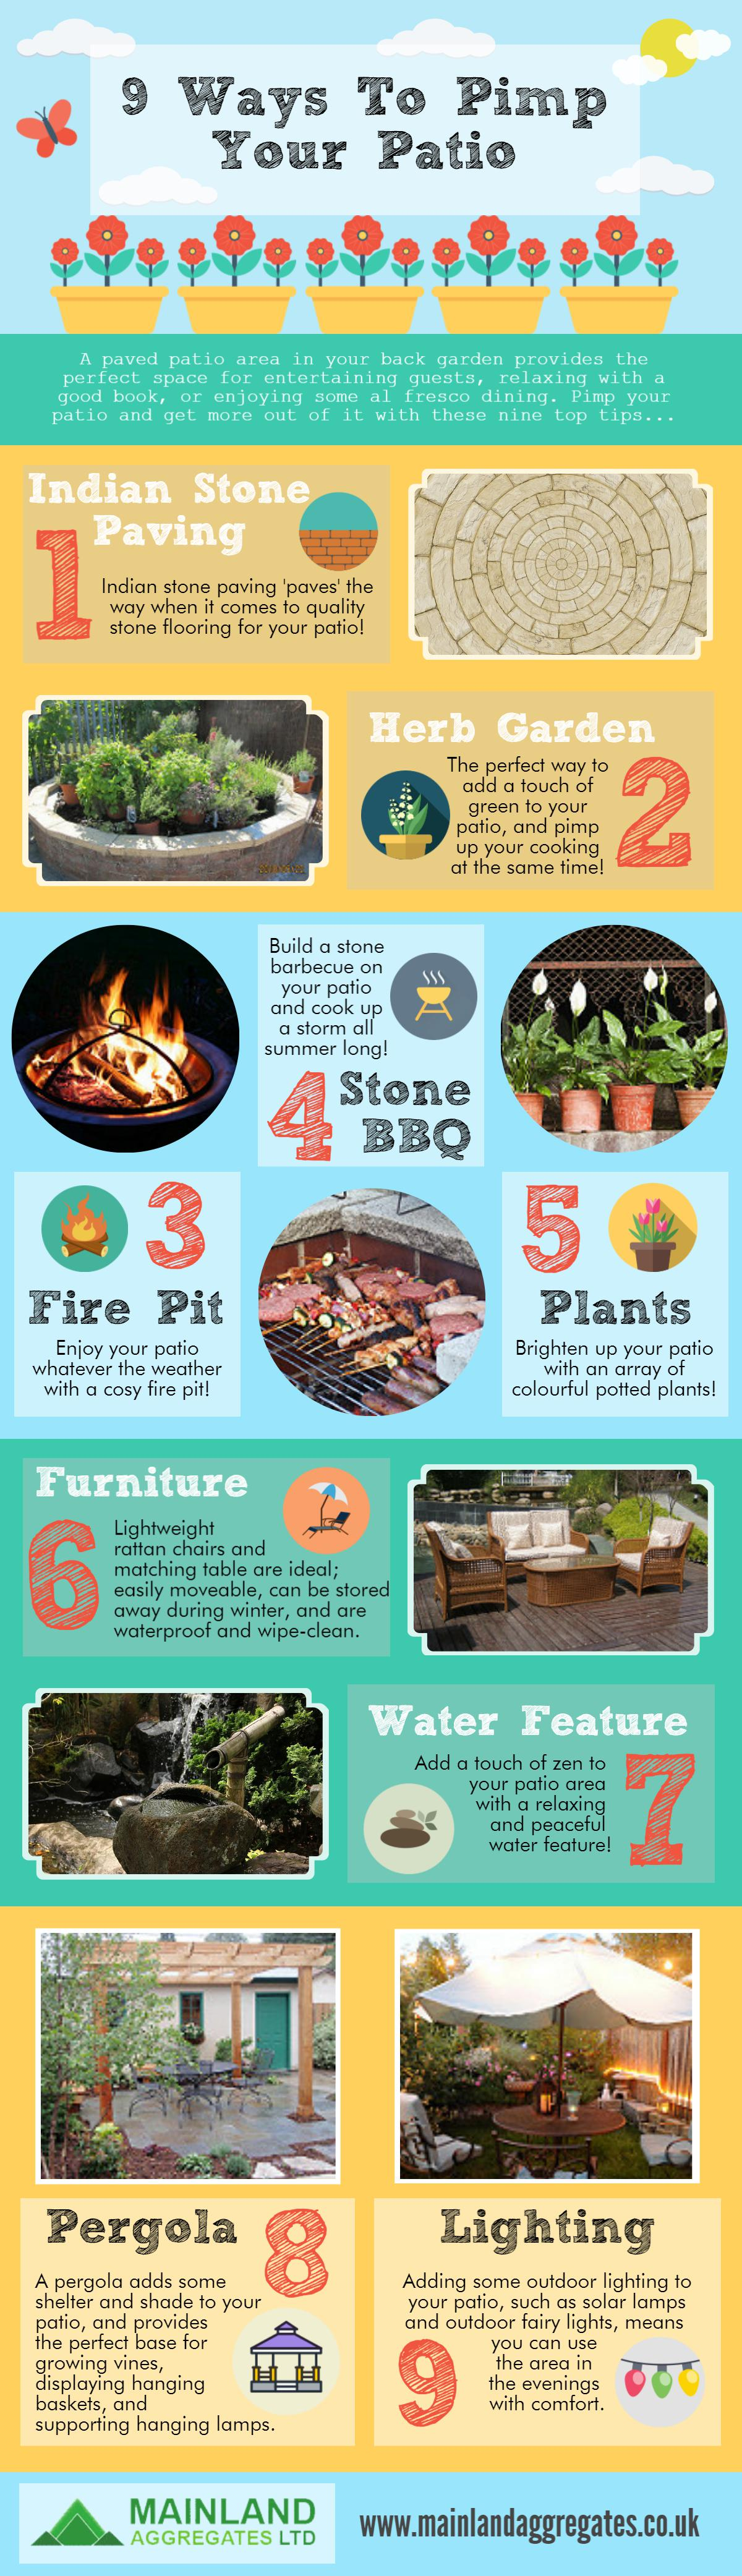 Pimp Your Patio Infographic